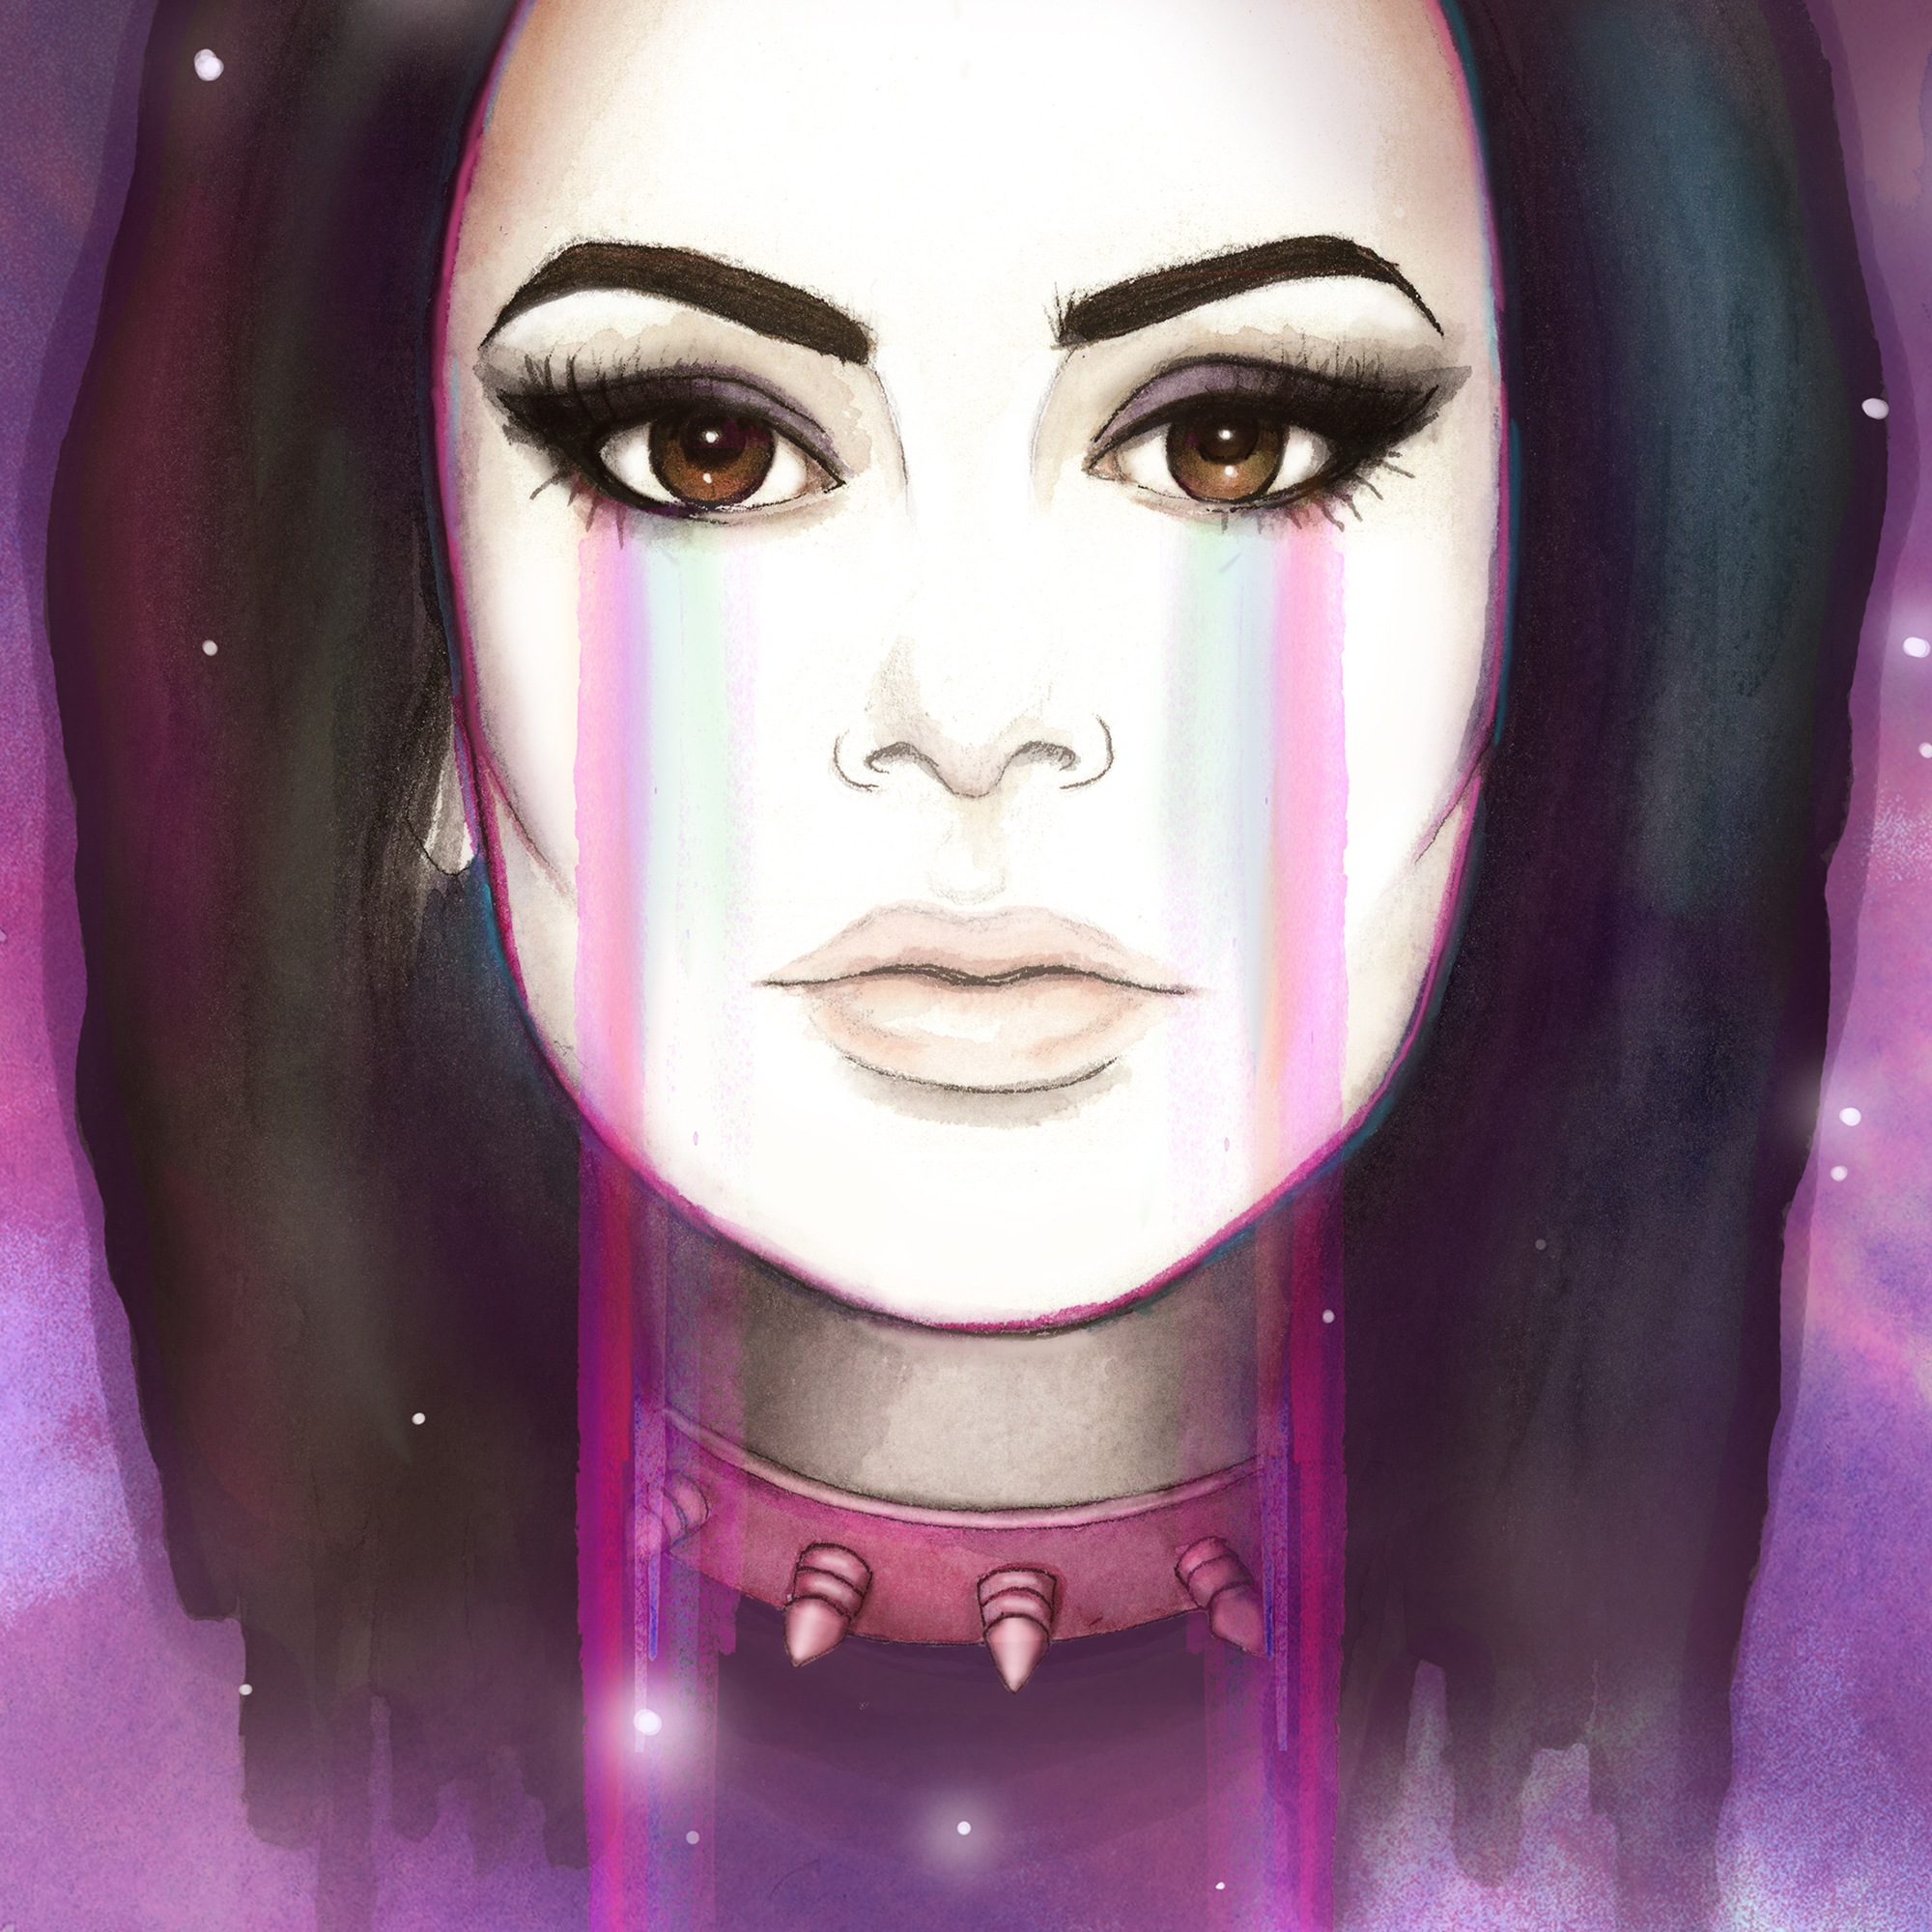 Charli XCX Poster: Promotional poster of musician Charli XCX. Watercolor, micron pens, and digital media.